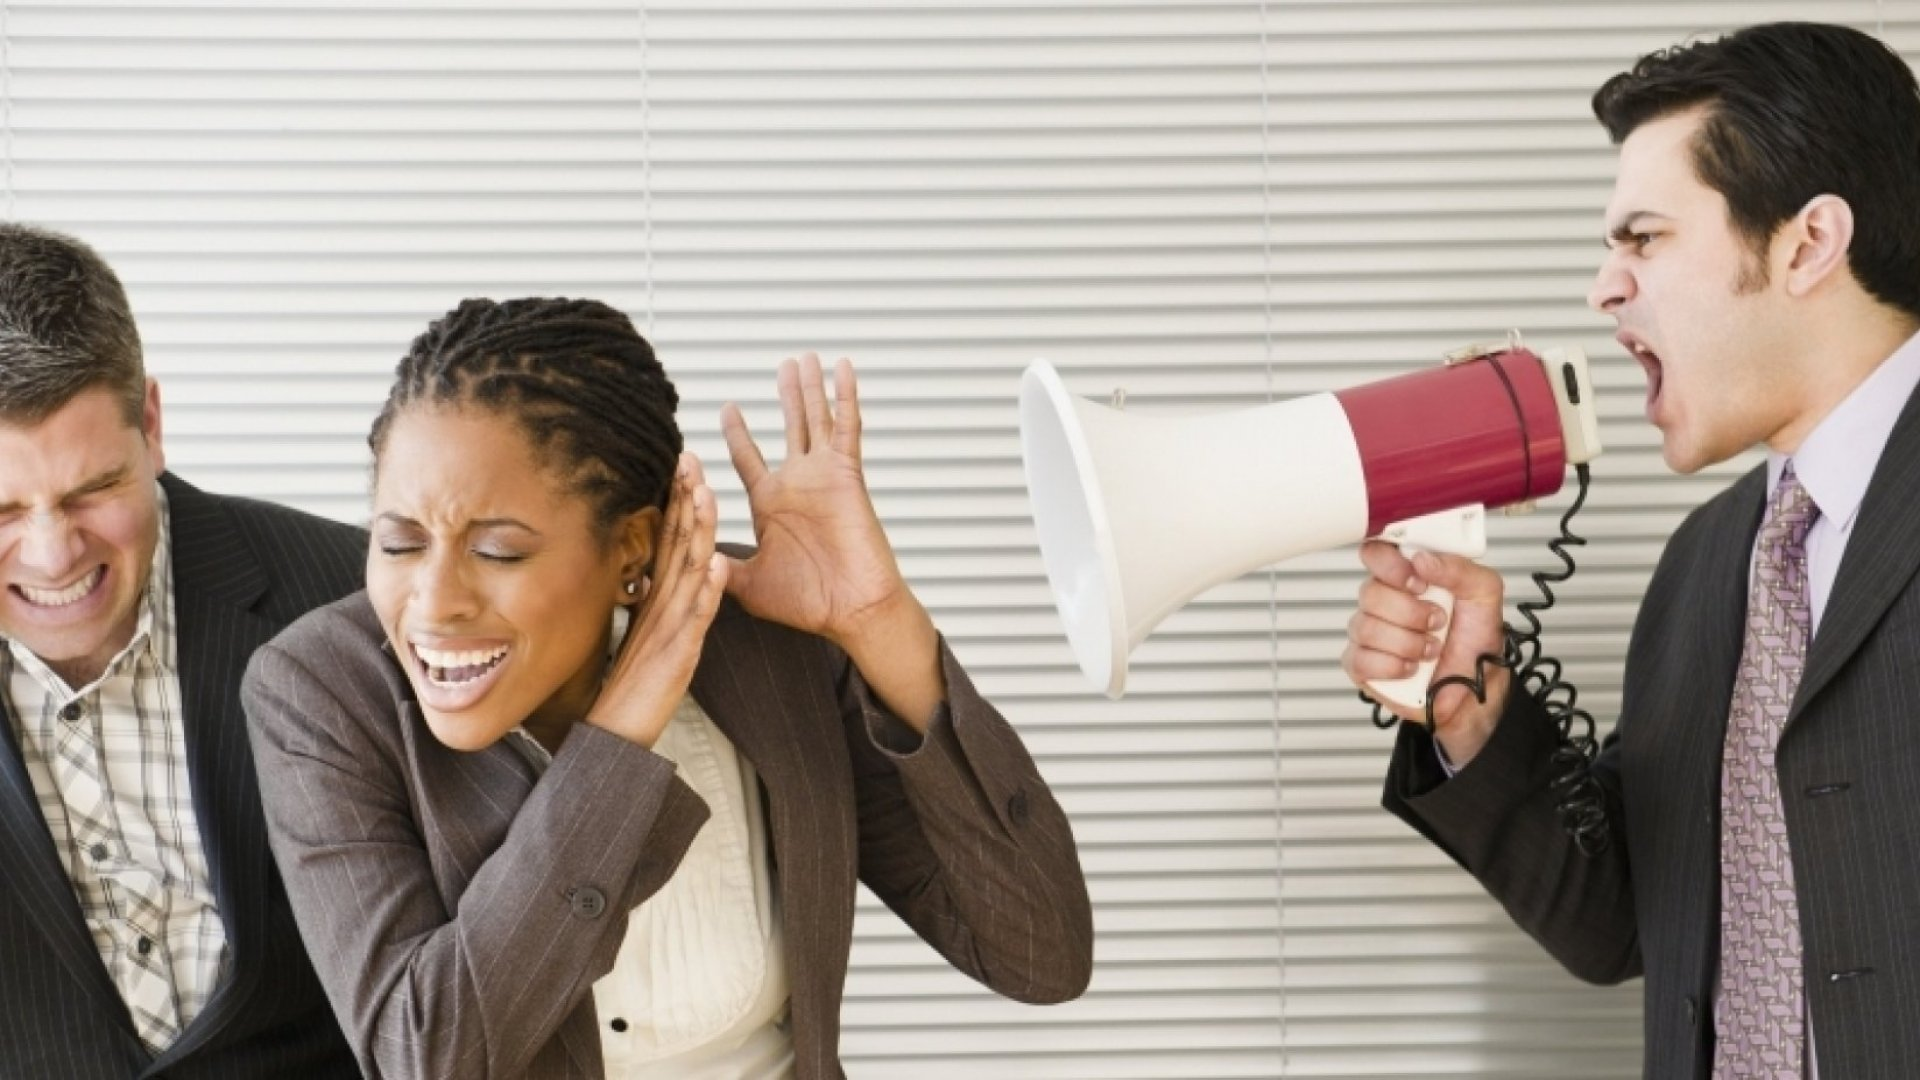 6 Ways to Persuade Without Being Pushy